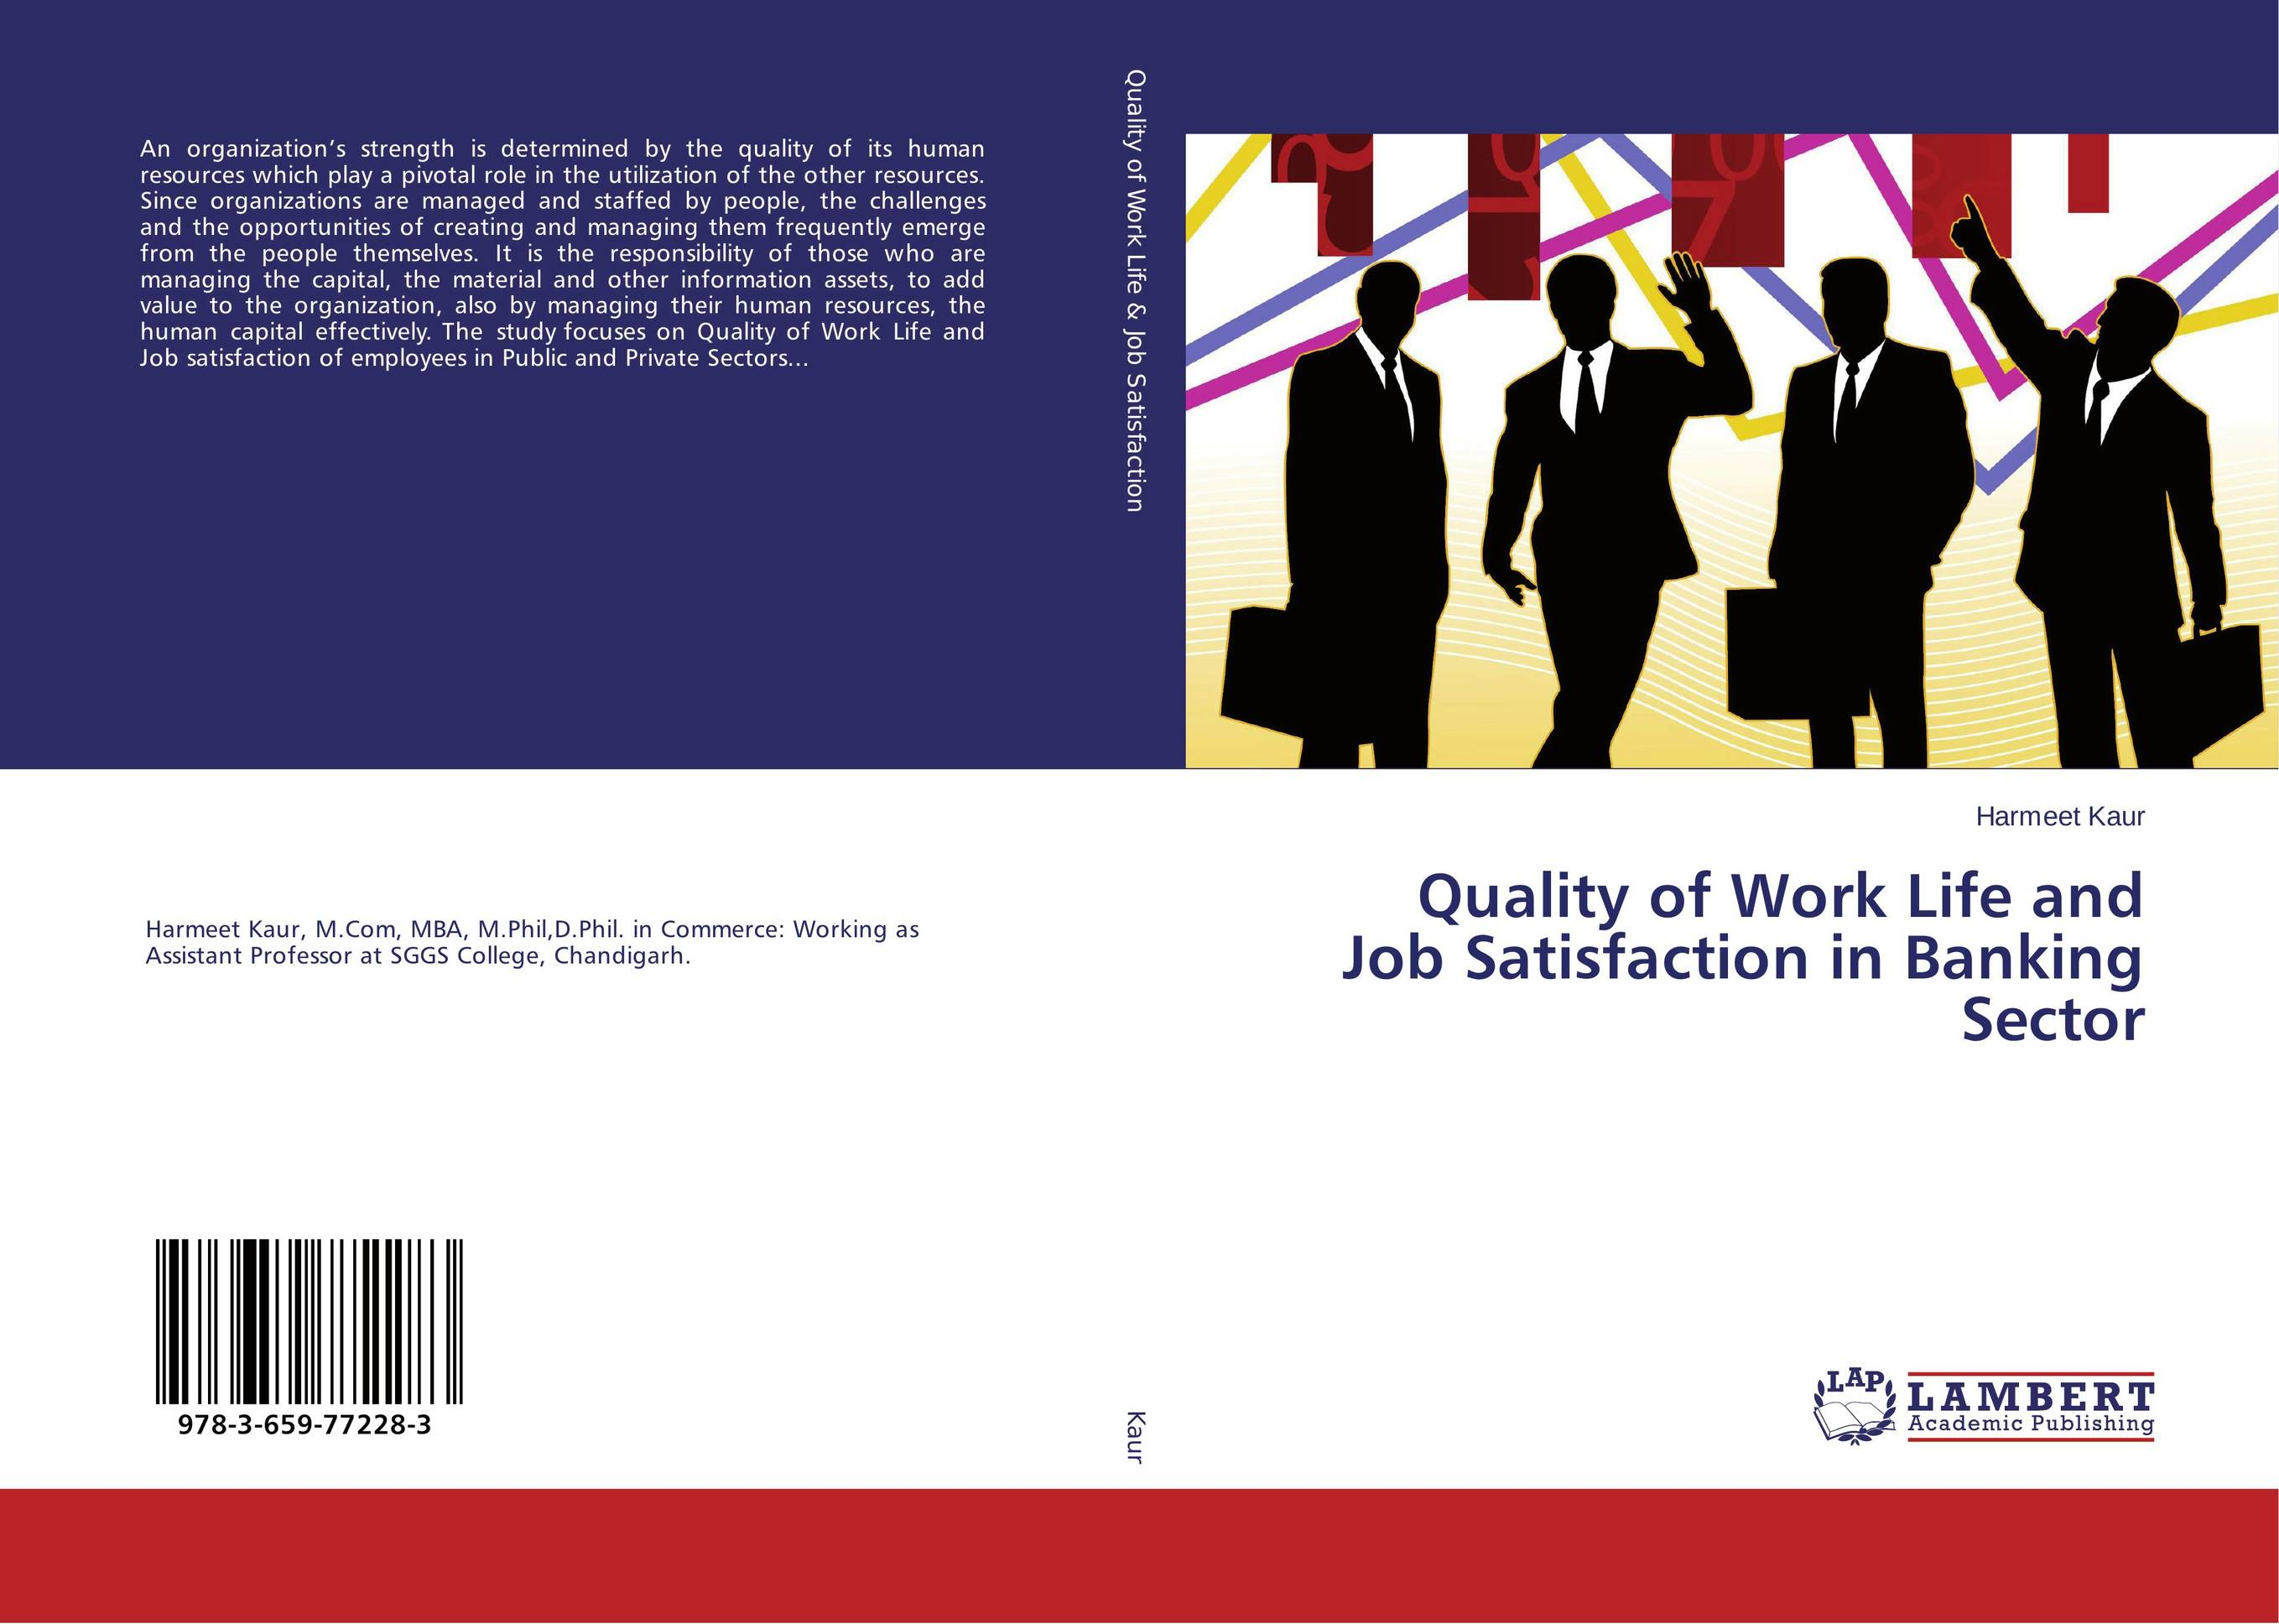 organizational ethics and employees job satisfaction The effect of organizational ethics on the job satisfaction of information technology professionals in poland, a transition economy from the visegrad group, was examined.